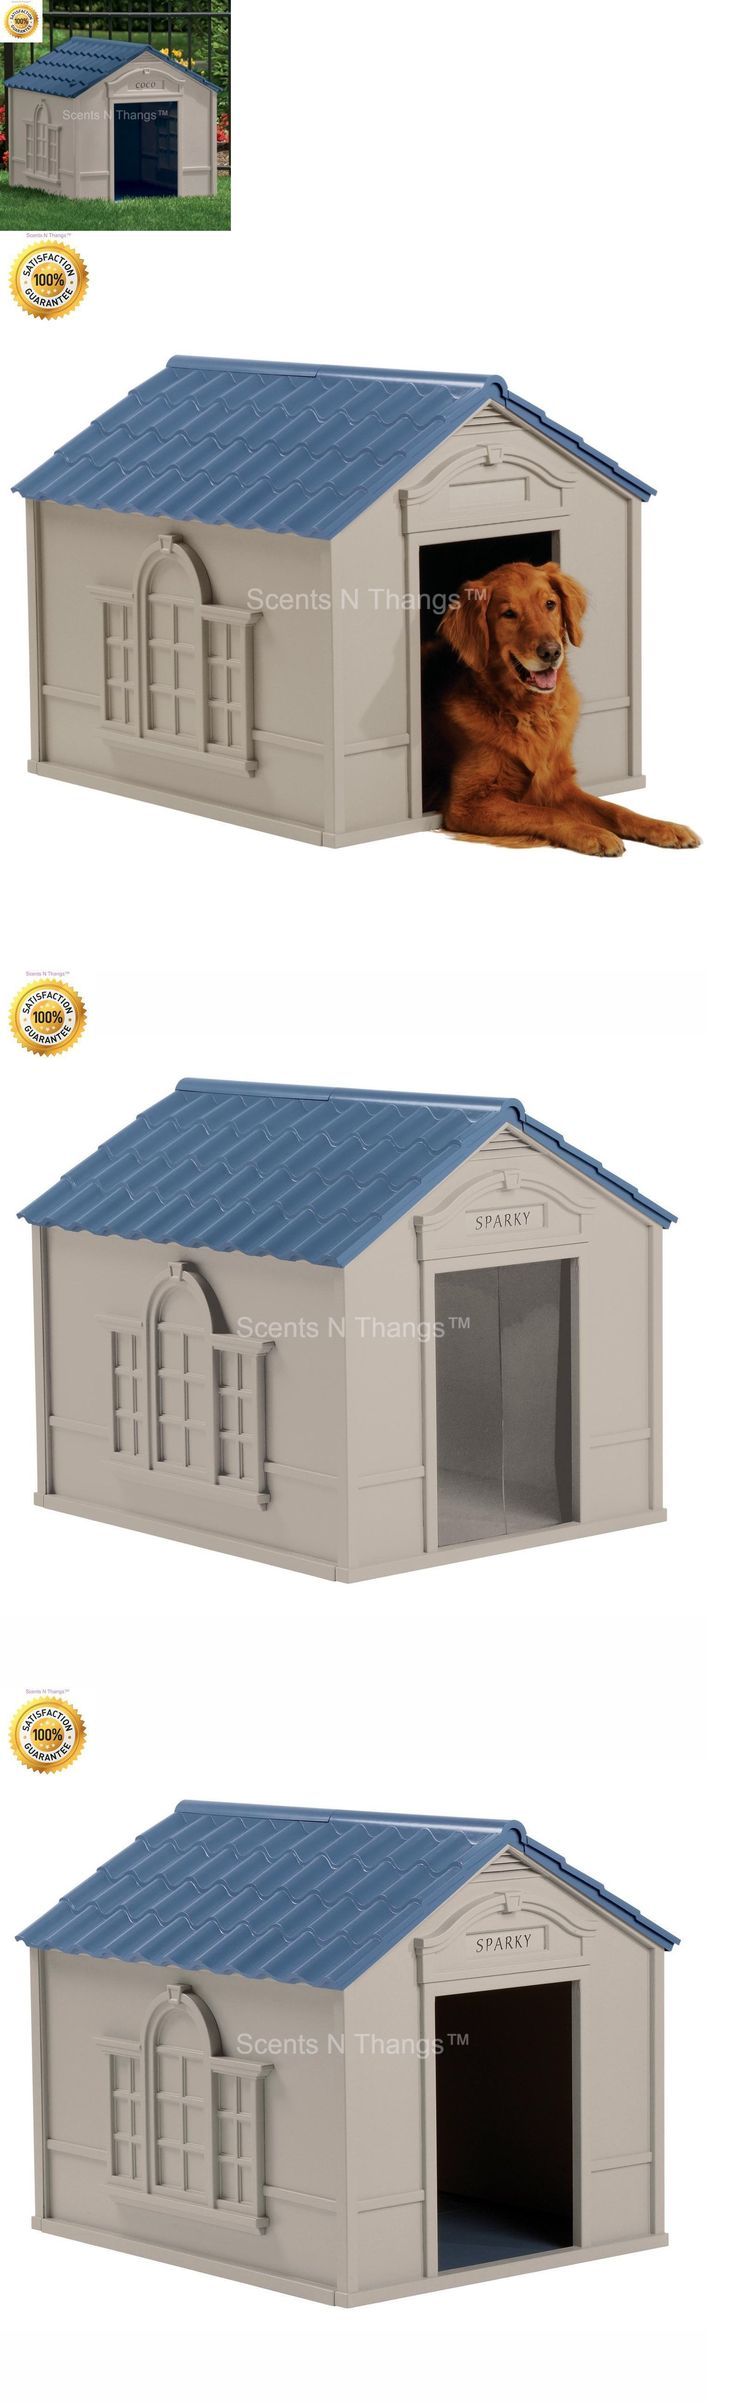 Dog Houses 108884: Xl Dog House Extra Large Dog Houses For Large Dogs Weather Resistant Pet Shelter -> BUY IT NOW ONLY: $84.99 on eBay!